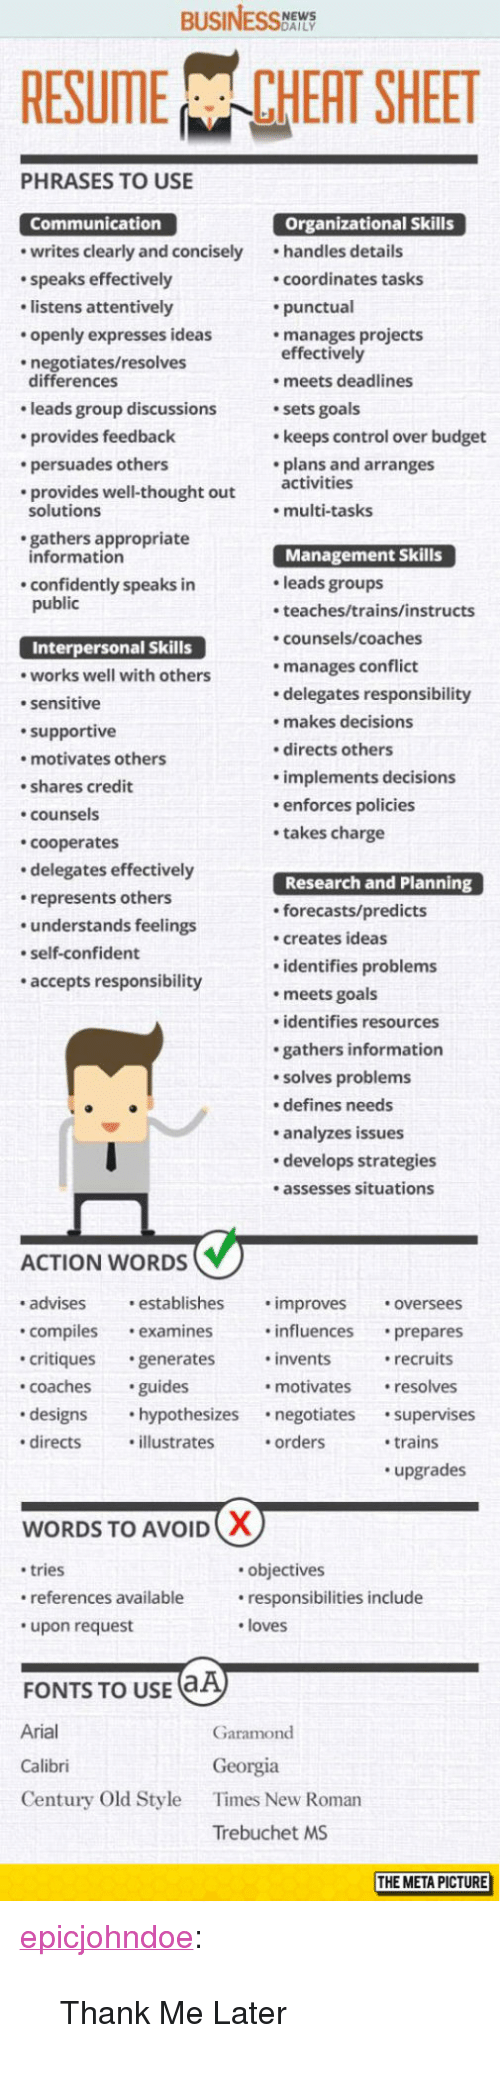 """trebuchet: BUSINESS  RESUME CHEAT SHEET  PHRASES TO USE  Organizational Skills  Communication  writes clearly and concisely handles details  speaks effectively  listens attentively  openly expresses ideas  negotiates/resolves  coordinates tasks  punctual  manages projects  effectively  differences  leads group discussions  provides feedback  persuades others  provides well-thought out ctivities  . meets deadlines  sets goals  keeps control over budget  plans and arranges  solutions  multi-tasks  gathers appropriate  Management Skills  leads groups  teaches/trains/instructs  counsels/coaches  manages conflict  delegates responsibility  makes decisions  directs others  implements decisions  enforces policies  takes charge  information  confidently speaks in  public  Interpersonal Skills  works well with others  sensitive  supportive  motivates others  shares credit  counsels  cooperates  delegates effectively  represents others  understands feelings  self-confident  accepts responsibility  Research and Planning  forecasts/predicts  creates ideas  identifies problems  meets goals  identifies resources  gathers information  solves problems  defines needs  analyzes issues  develops strategies  .assesses situations  ACTION WORDS  advises establishes .improves oversees  compilesexamines influences prepares  critiques generates invents  coachesguides  designs hypothesizes negotiates supervises  directsillustrates .orders  recruits  resolves  motivates  trains  upgrades  WORDS TO AVOID  tries  references available  upon request  objectives  responsibilities include  loves  FONTS TO USE  Arial  Calibri  Century Old Style  Garamond  Georgia  Times New Roman  Trebuchet MS  THE META PICTURE <p><a href=""""https://epicjohndoe.tumblr.com/post/172872405684/thank-me-later"""" class=""""tumblr_blog"""">epicjohndoe</a>:</p>  <blockquote><p>Thank Me Later</p></blockquote>"""